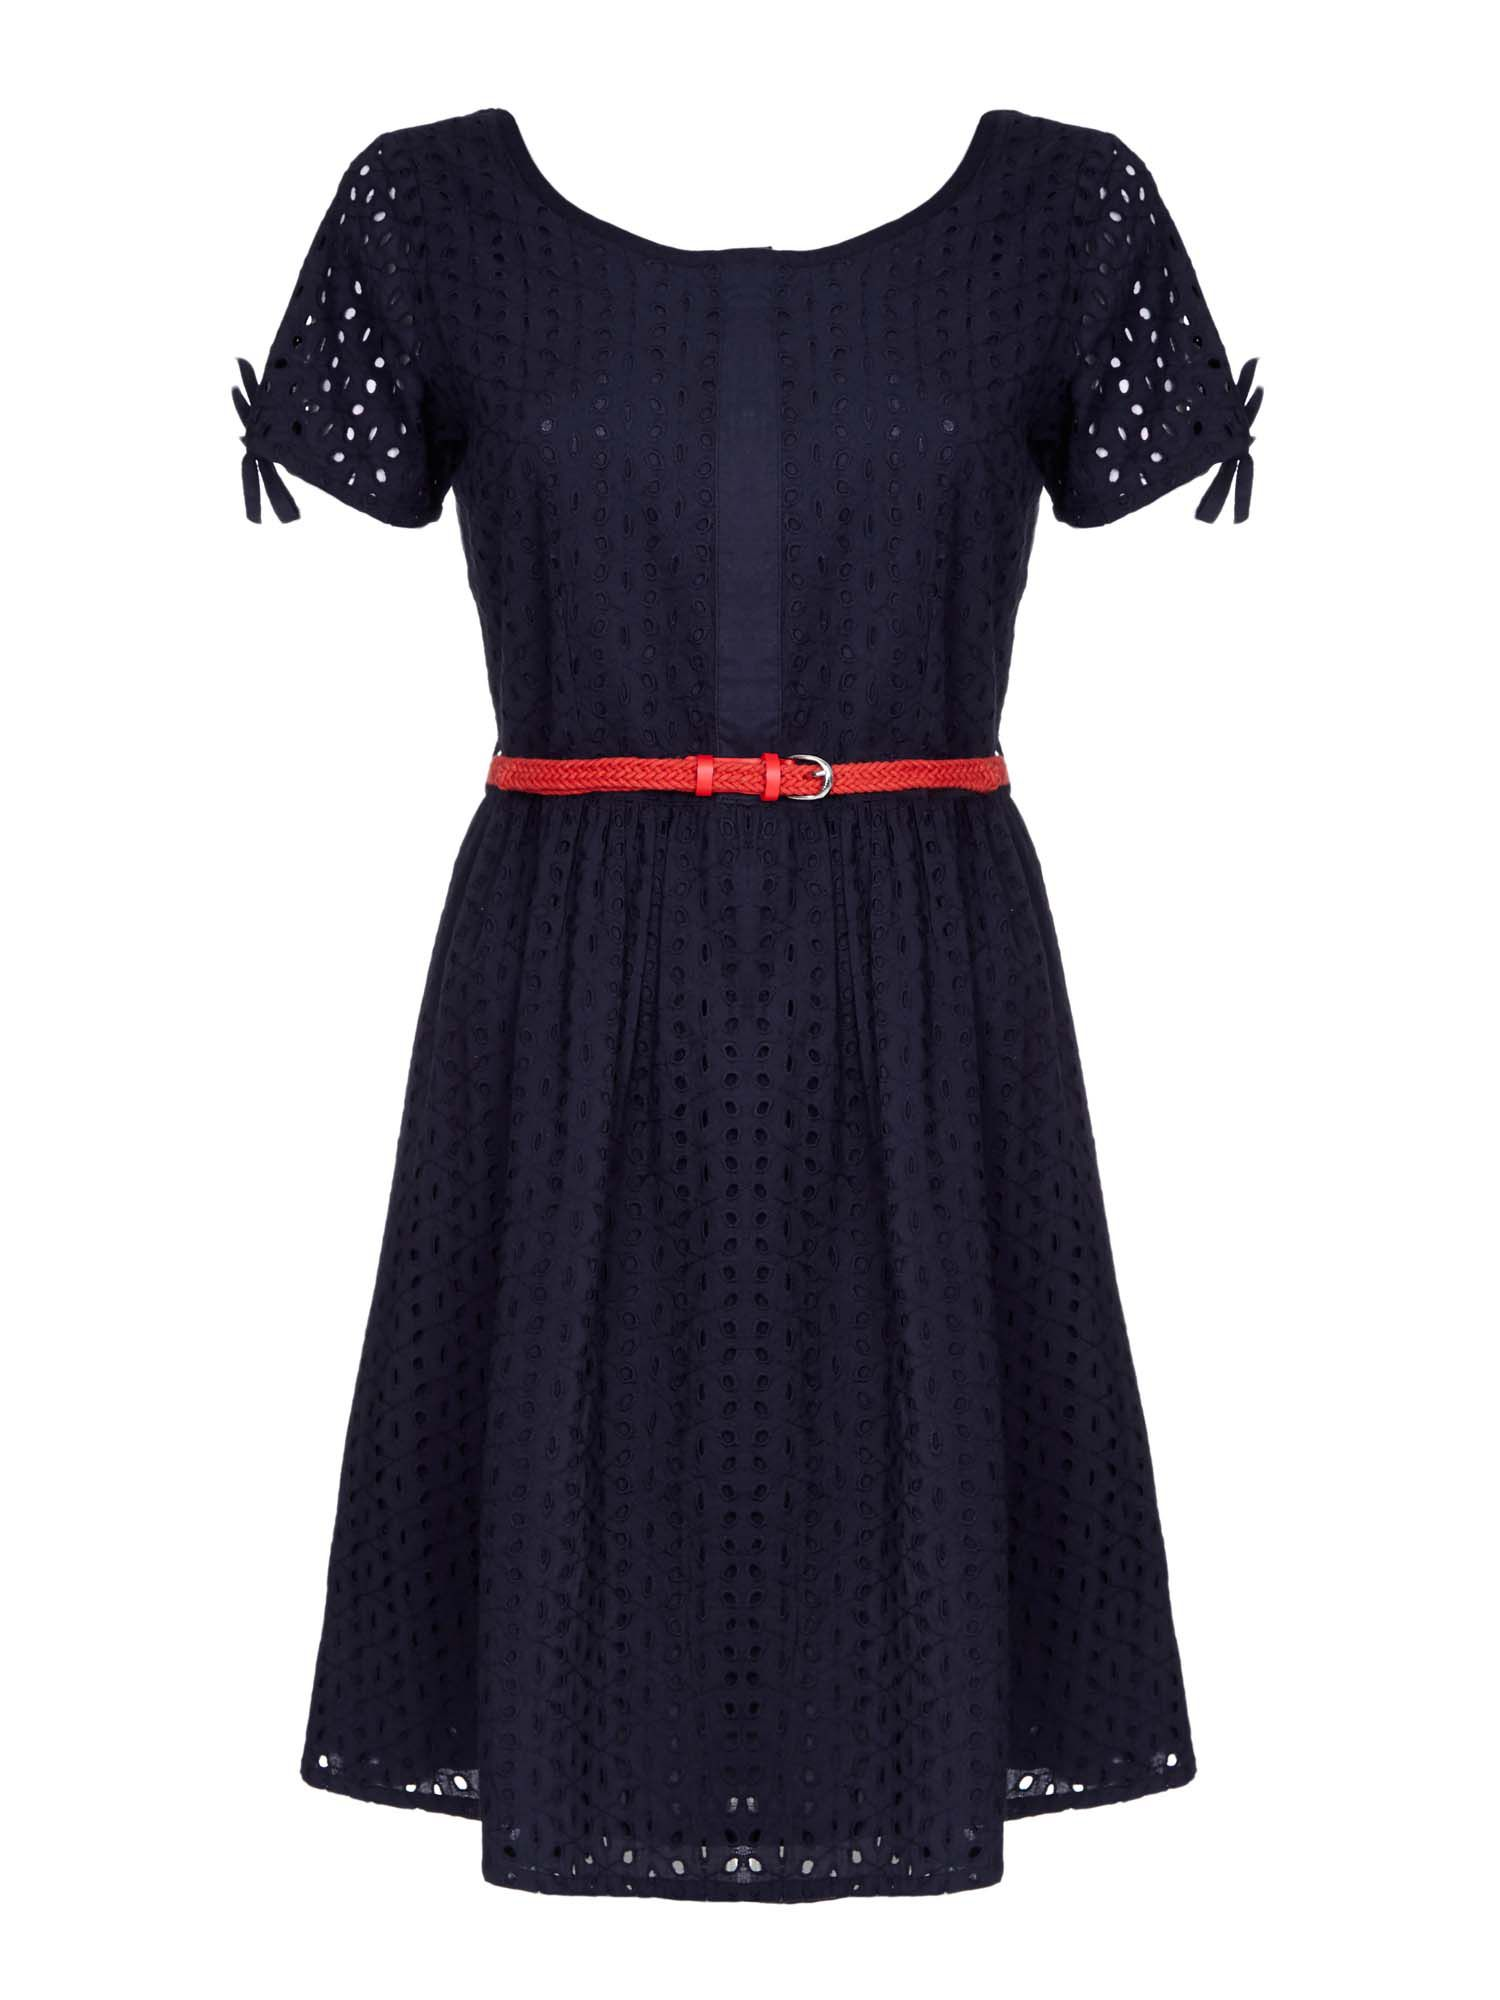 Yumi Broderie Anglaise Day Dress, Black